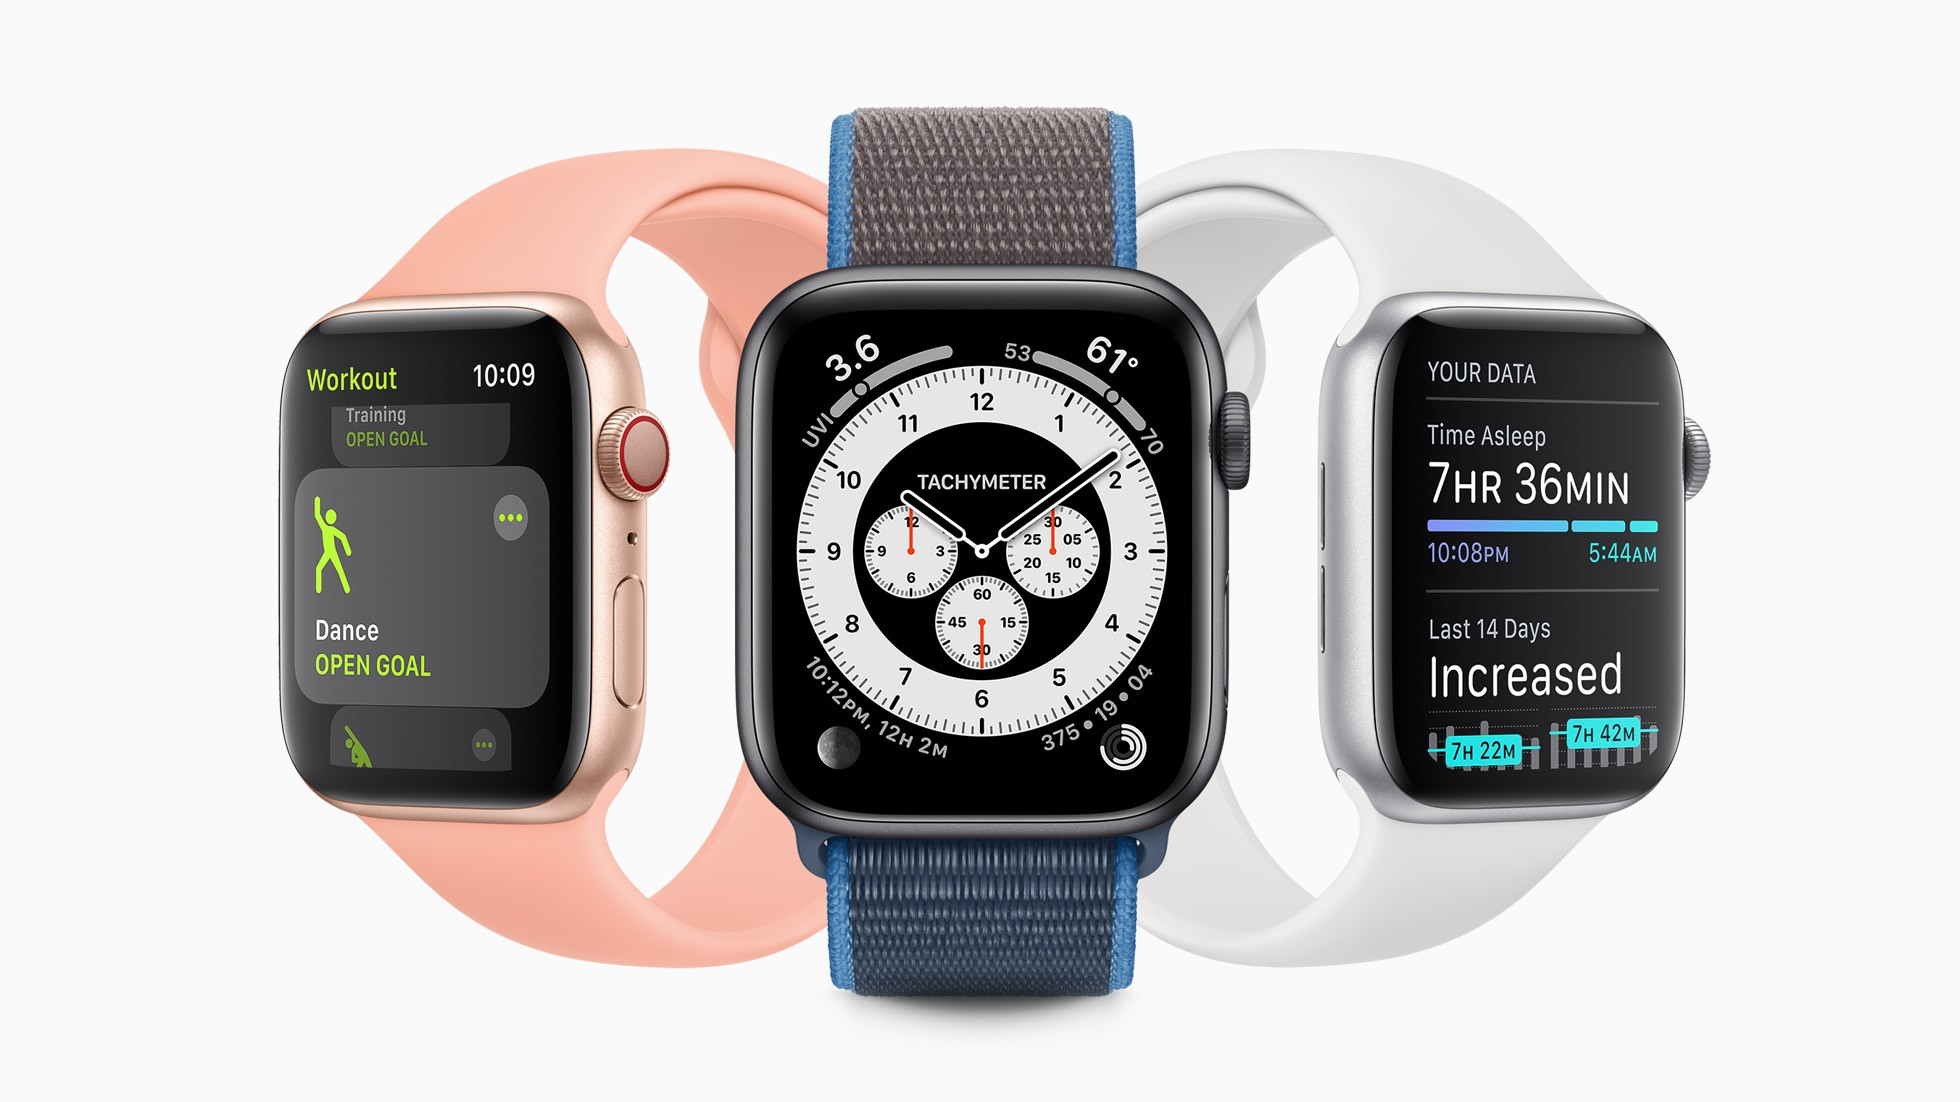 Apple launches new iPads and smart watches